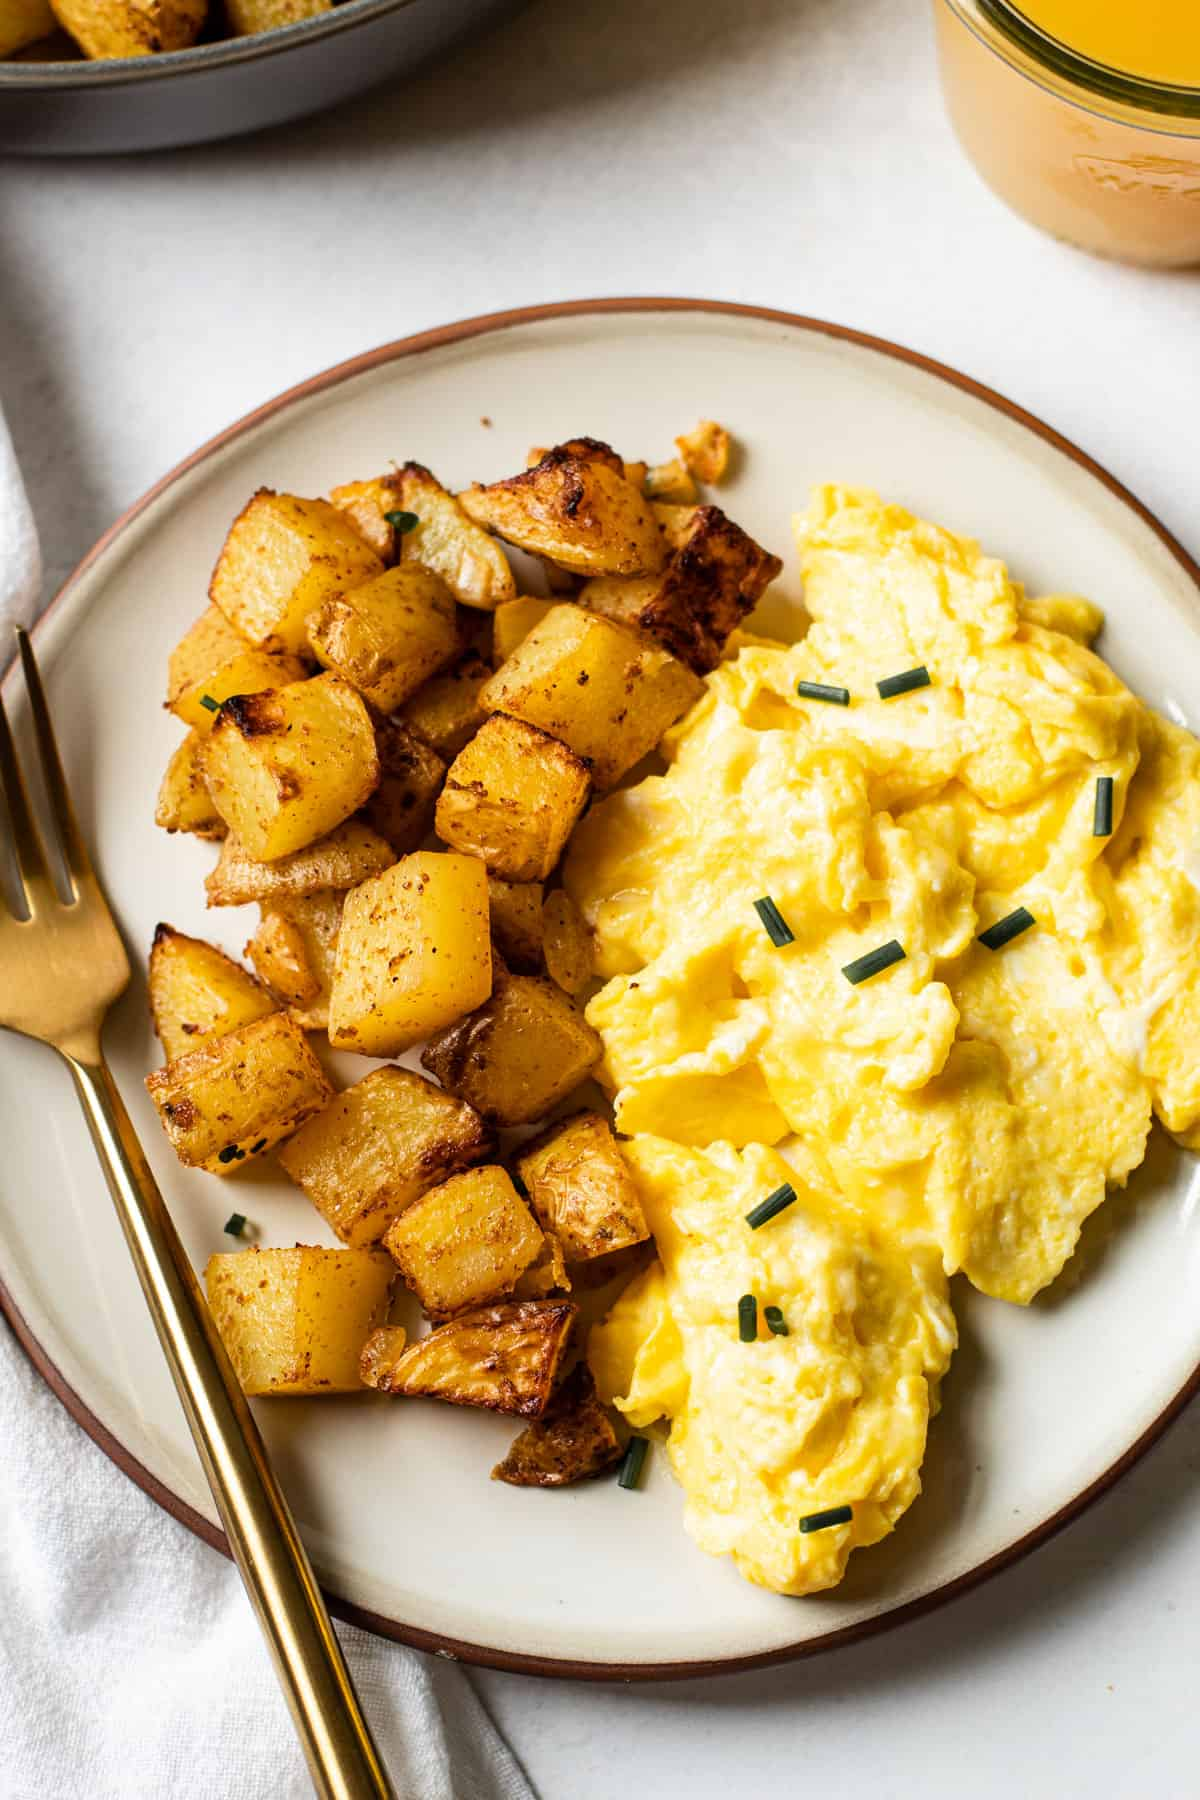 A plate of air fryer home fries with scrambled eggs.